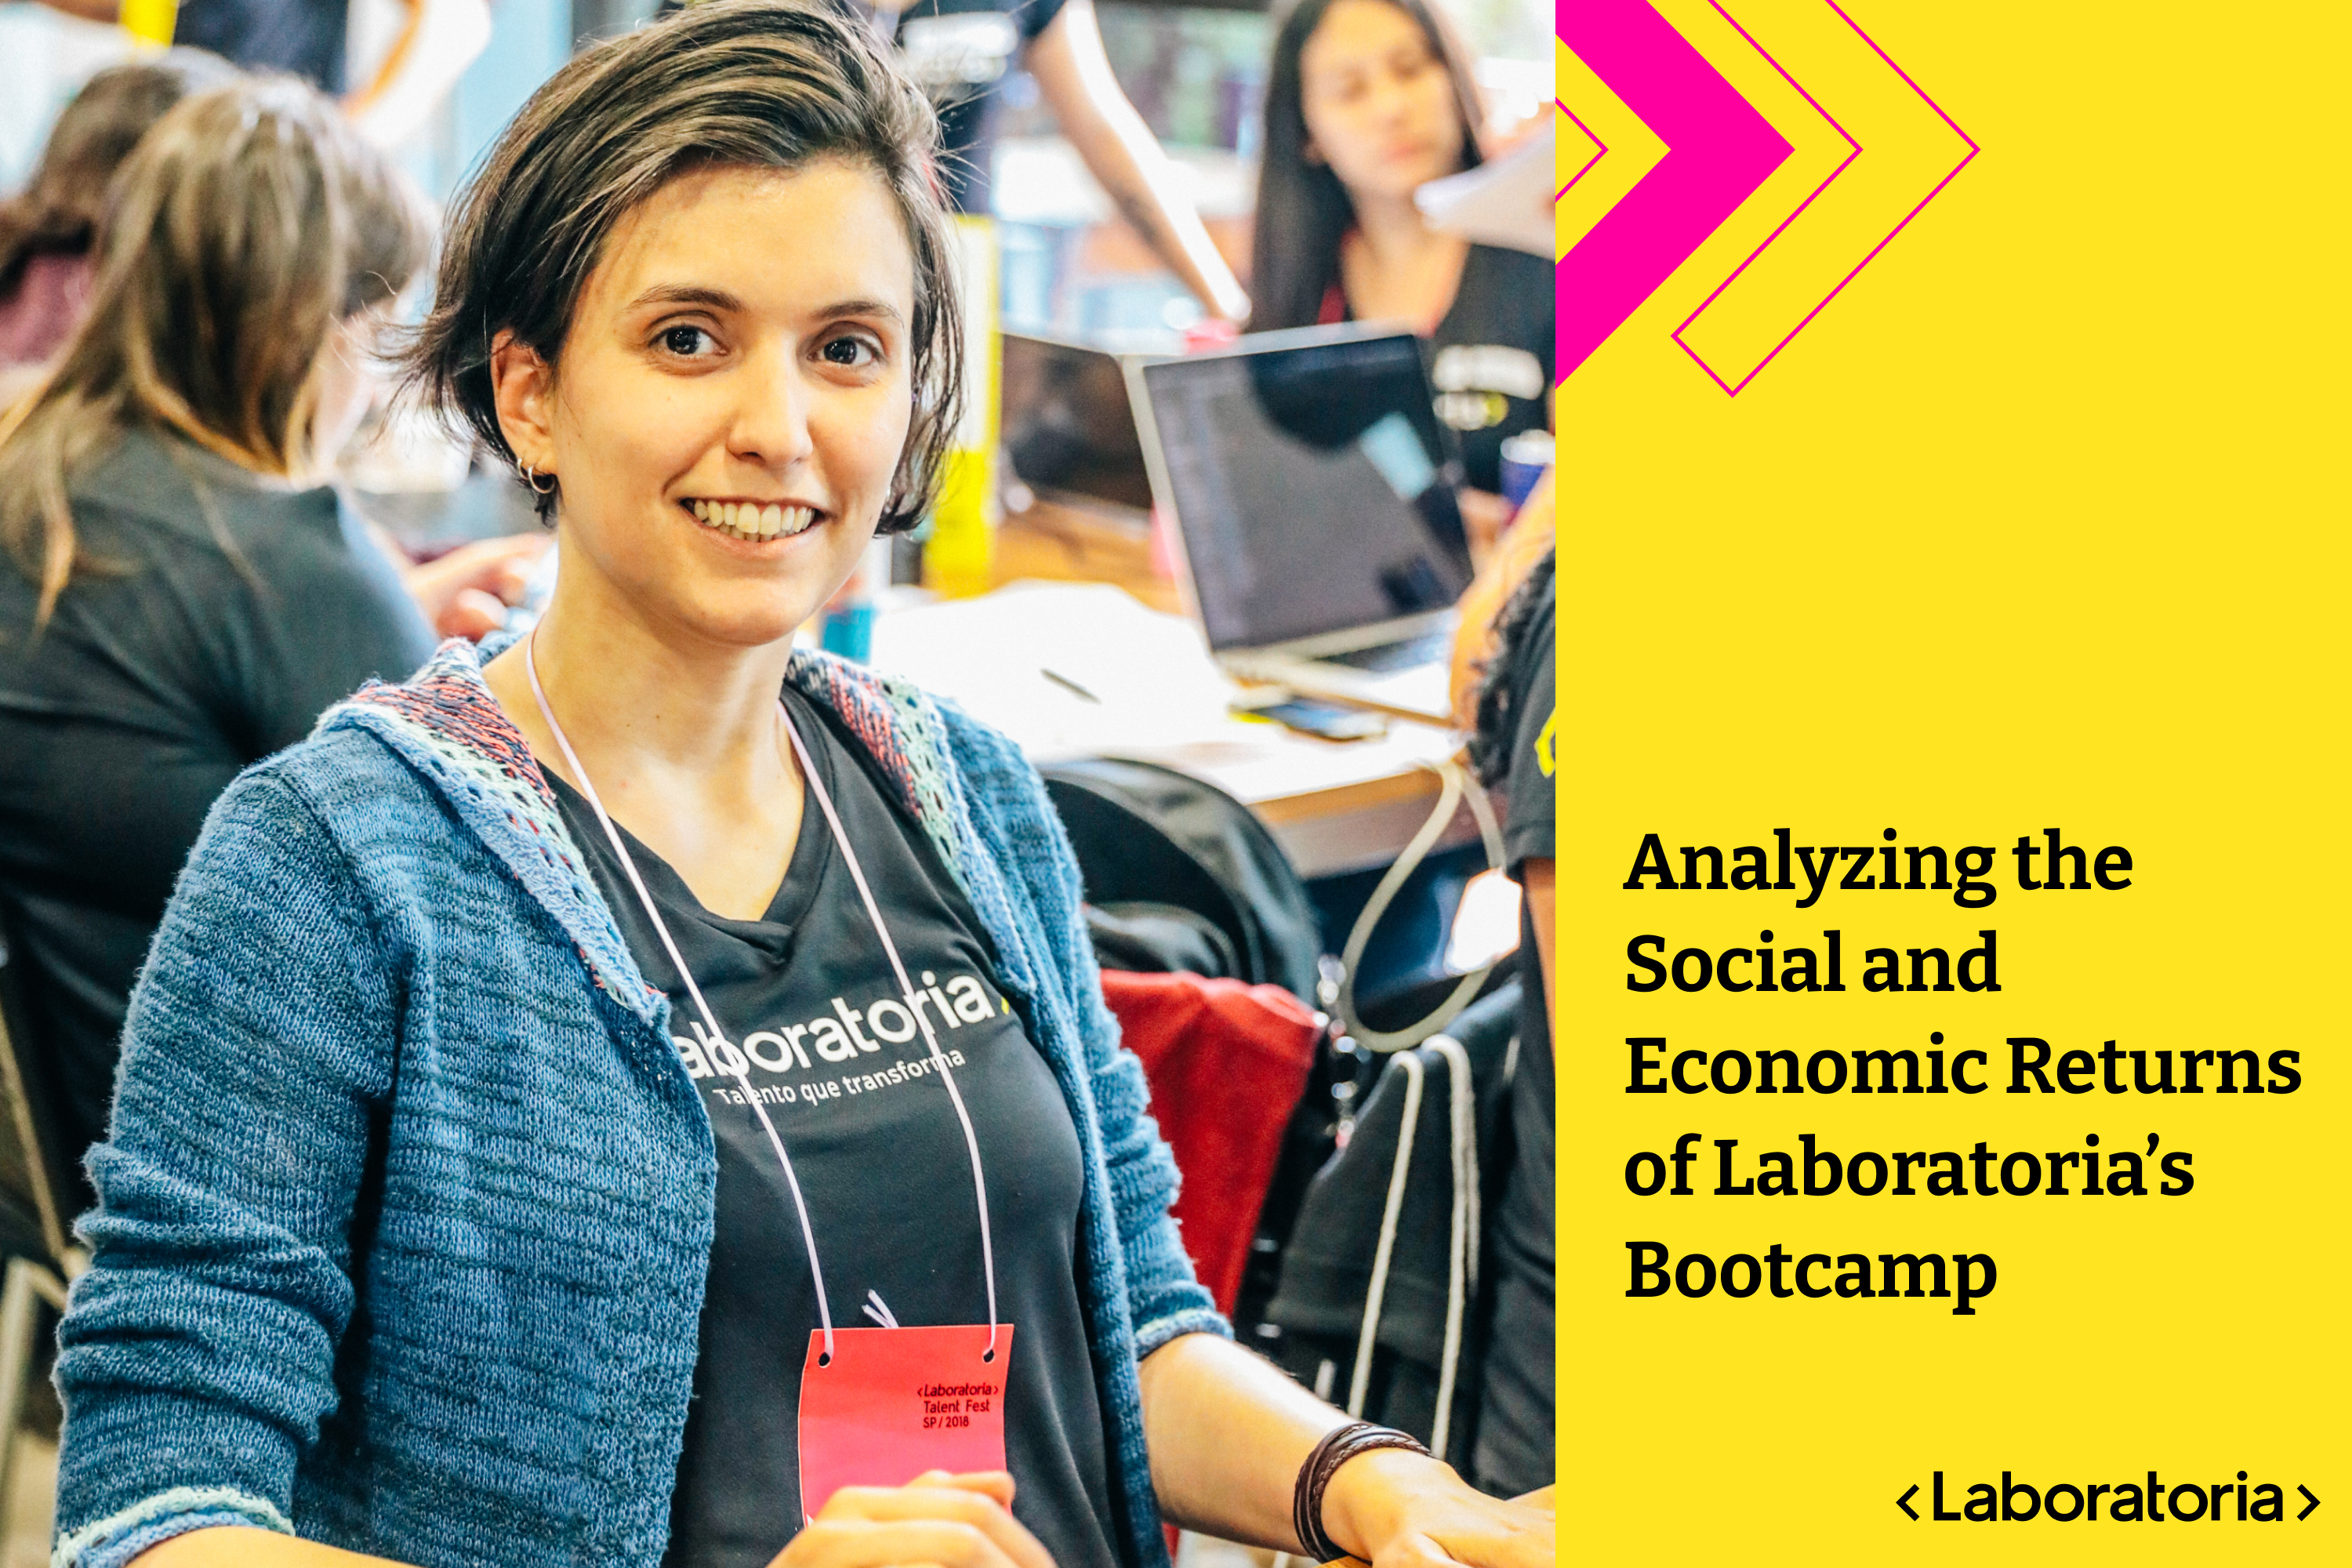 Analyzing the Social and Economic Returns of Laboratoria's Bootcamp